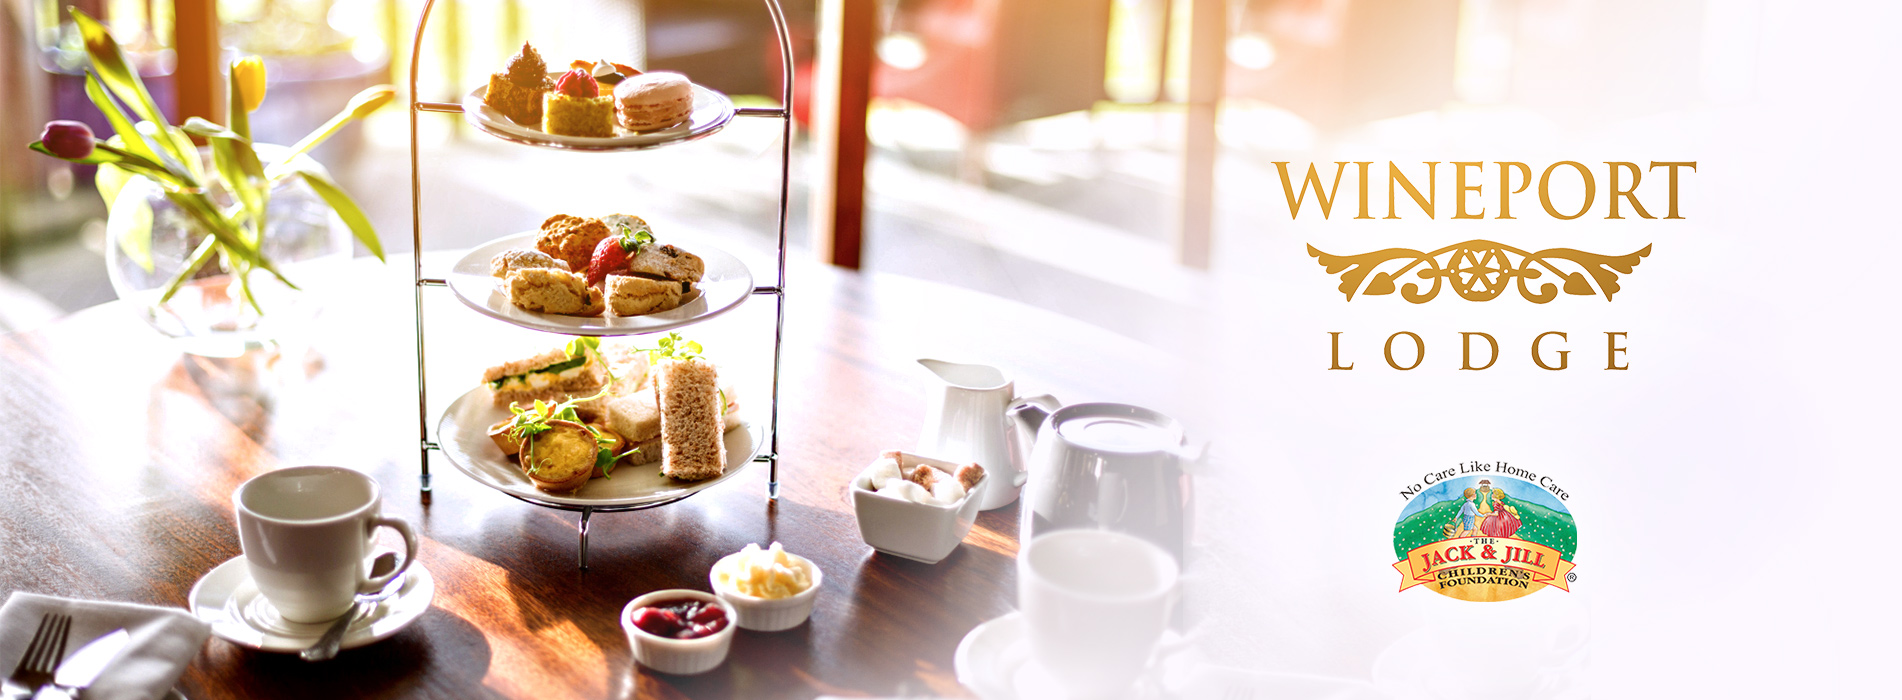 Wineport Lodge Afternoon Tea banner